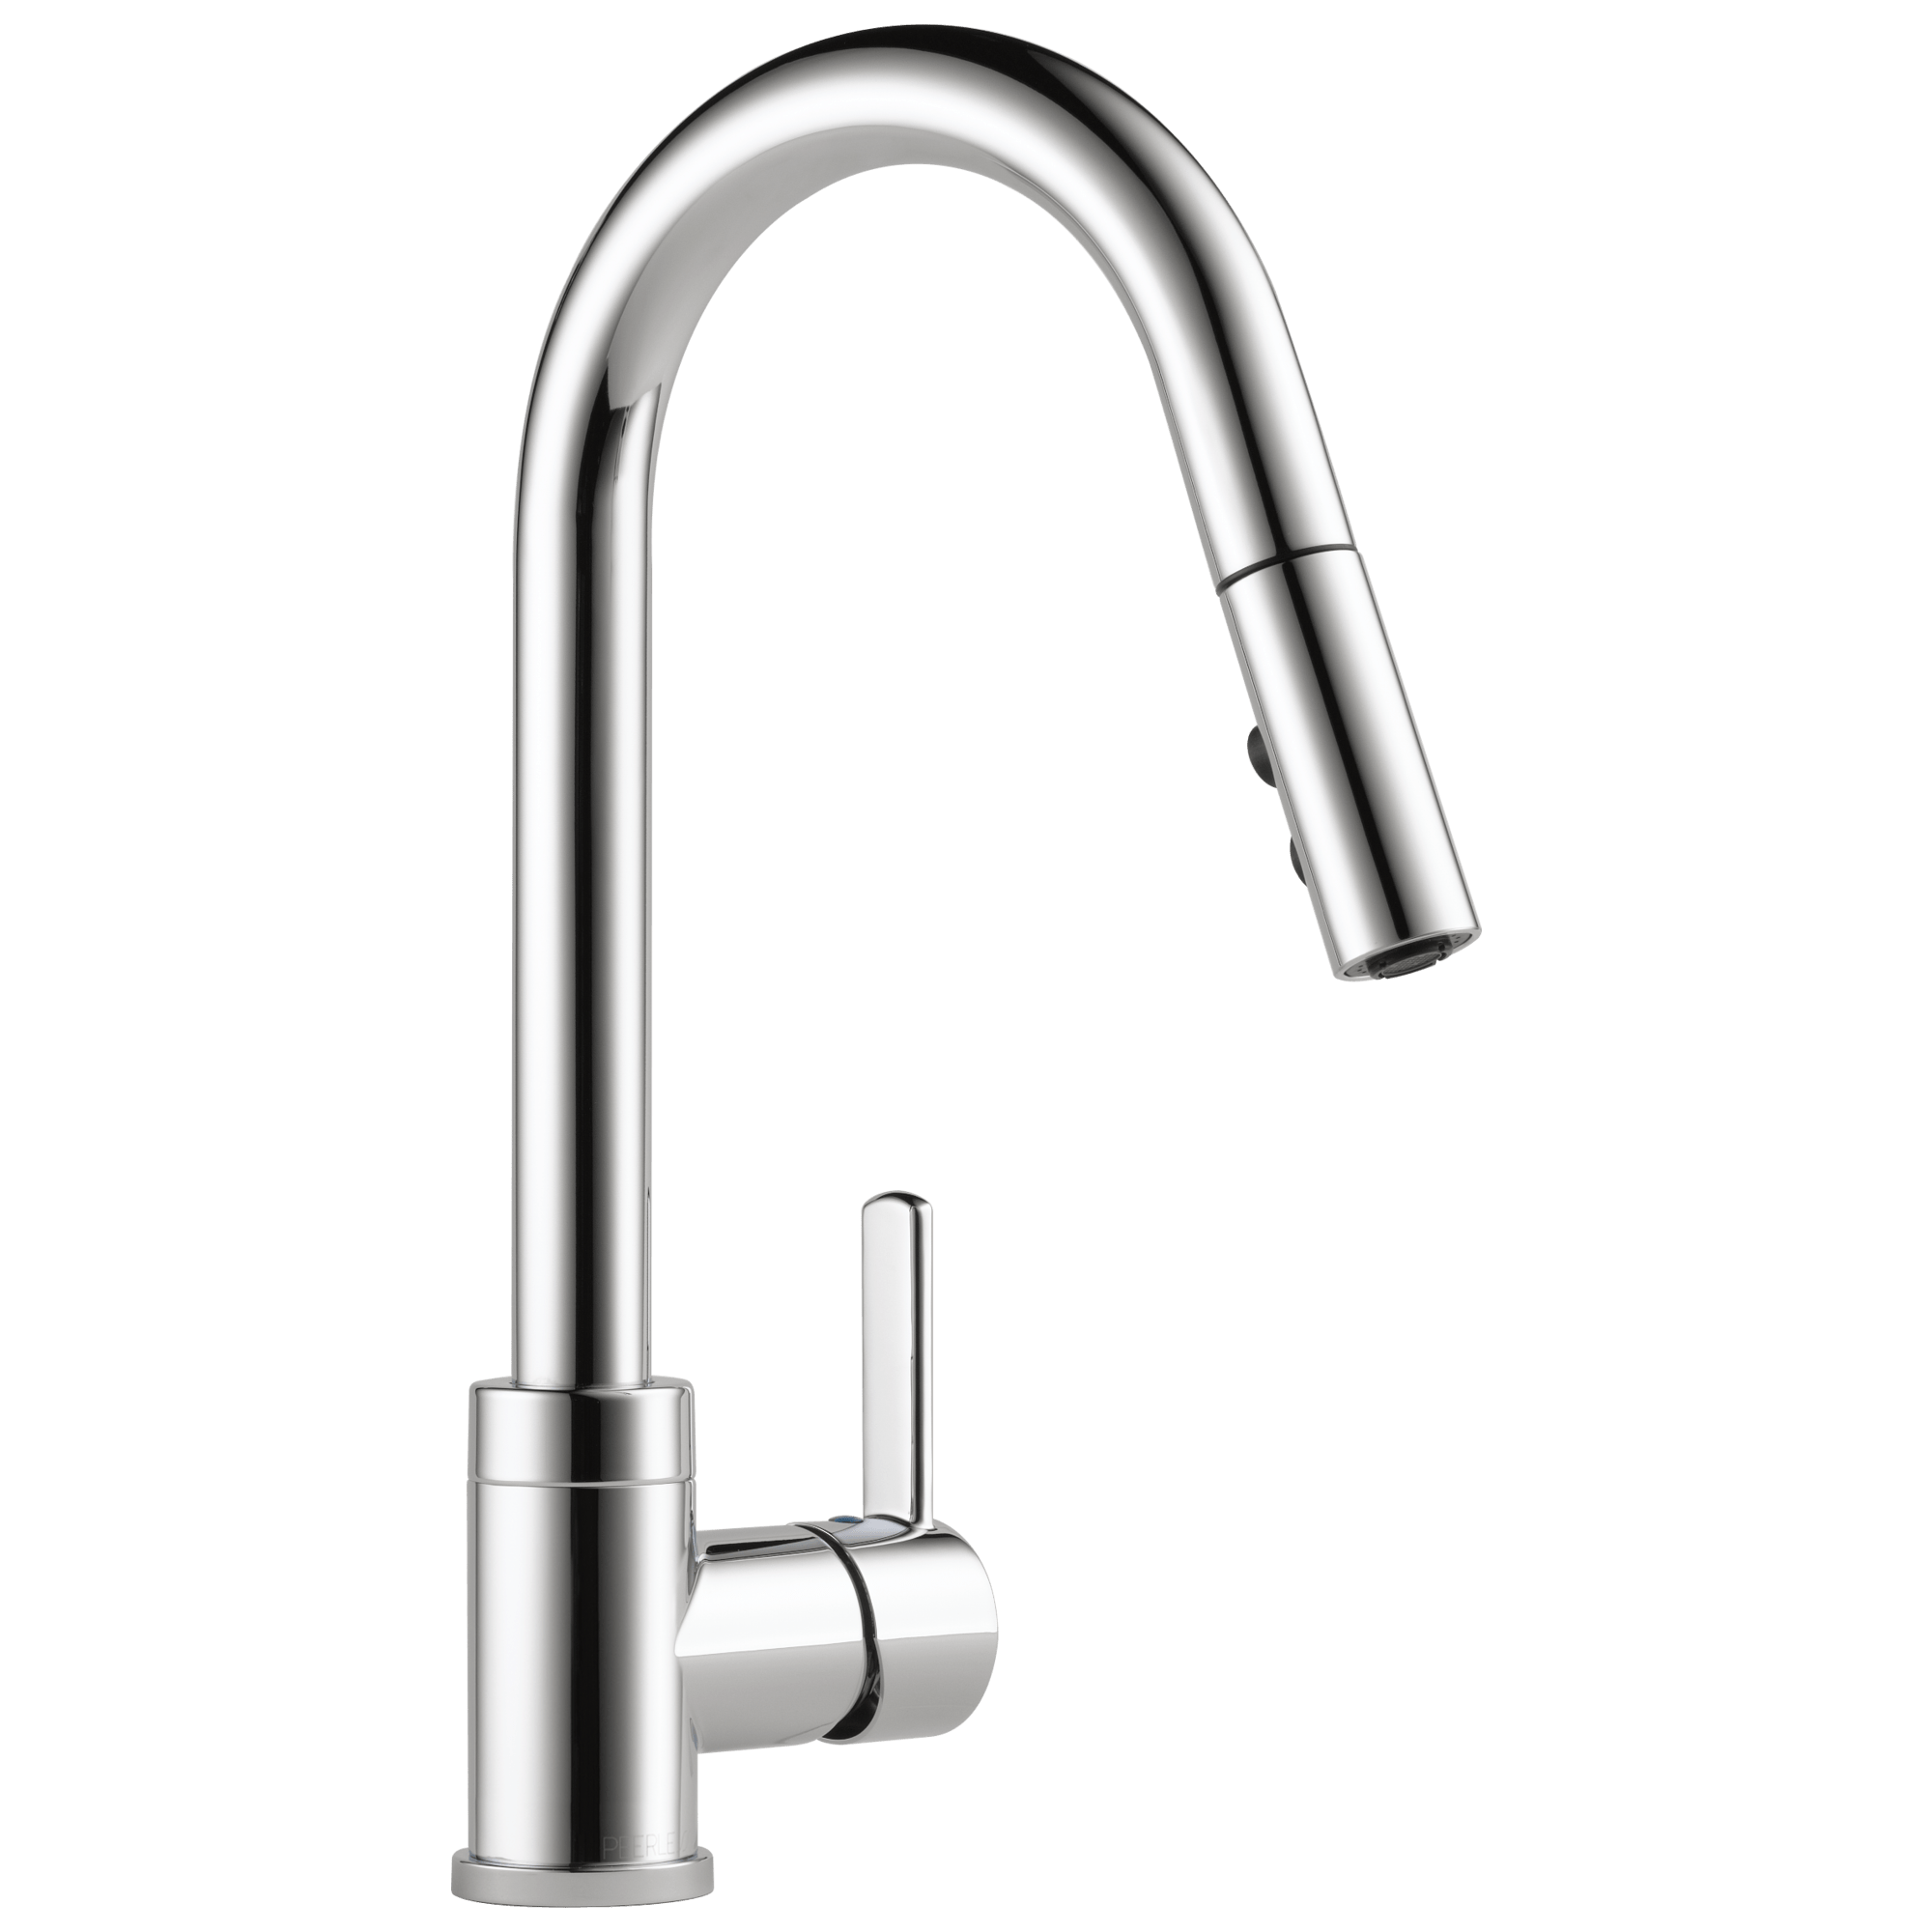 Kitchen Faucet Brand Logos 28 Images New